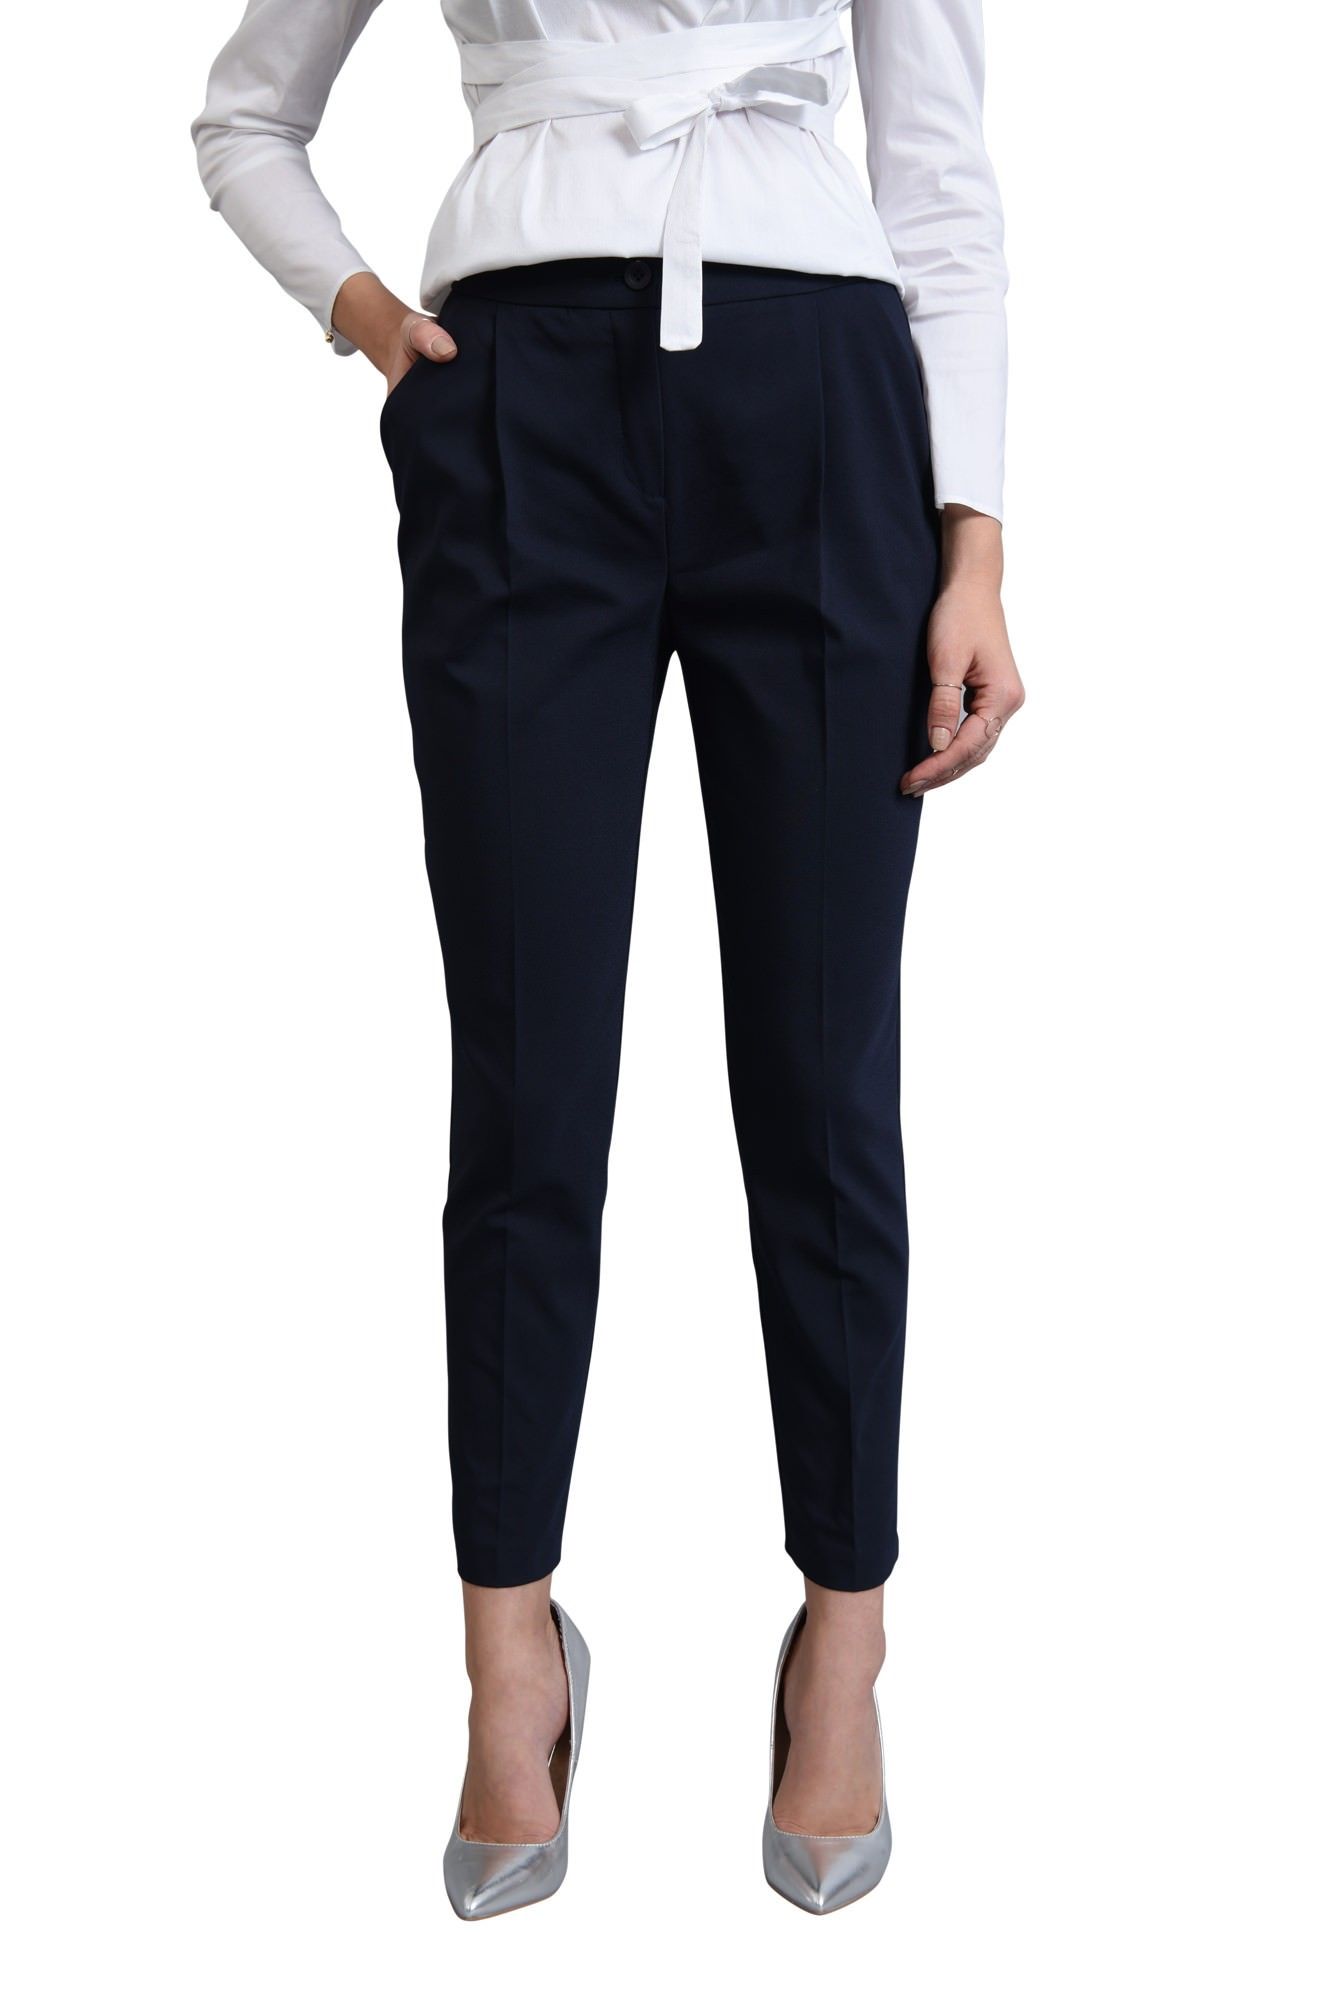 0 - PANTALON OFFICE PT 180-BLEUMARIN